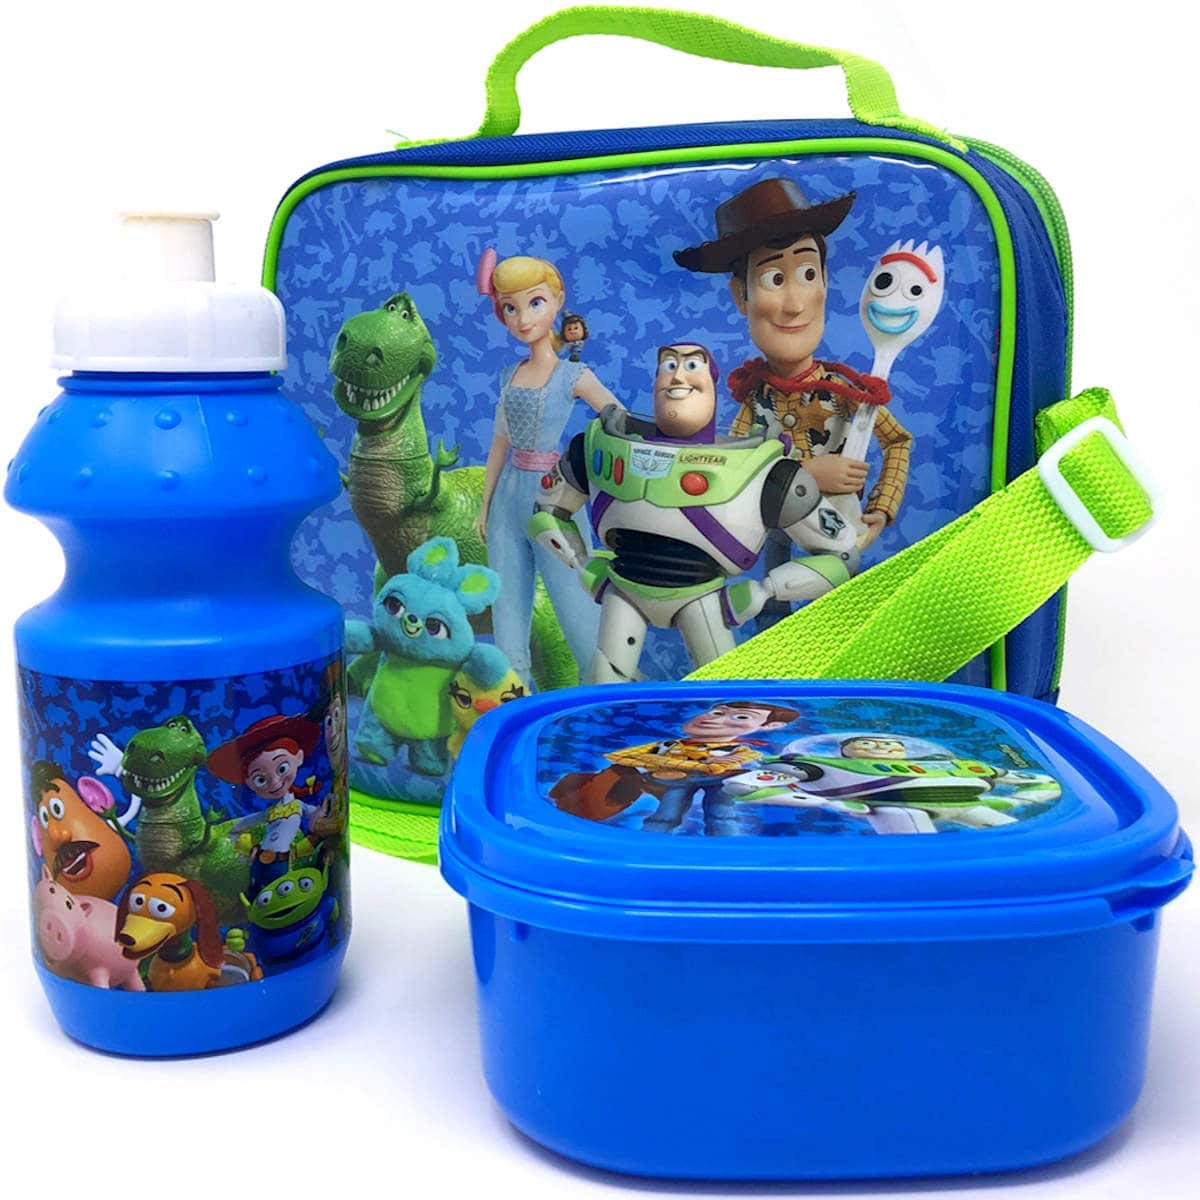 Disney Toy Story 4 Kids Insulated Lunch Bag with Sandwich Box and Drinks Bottle